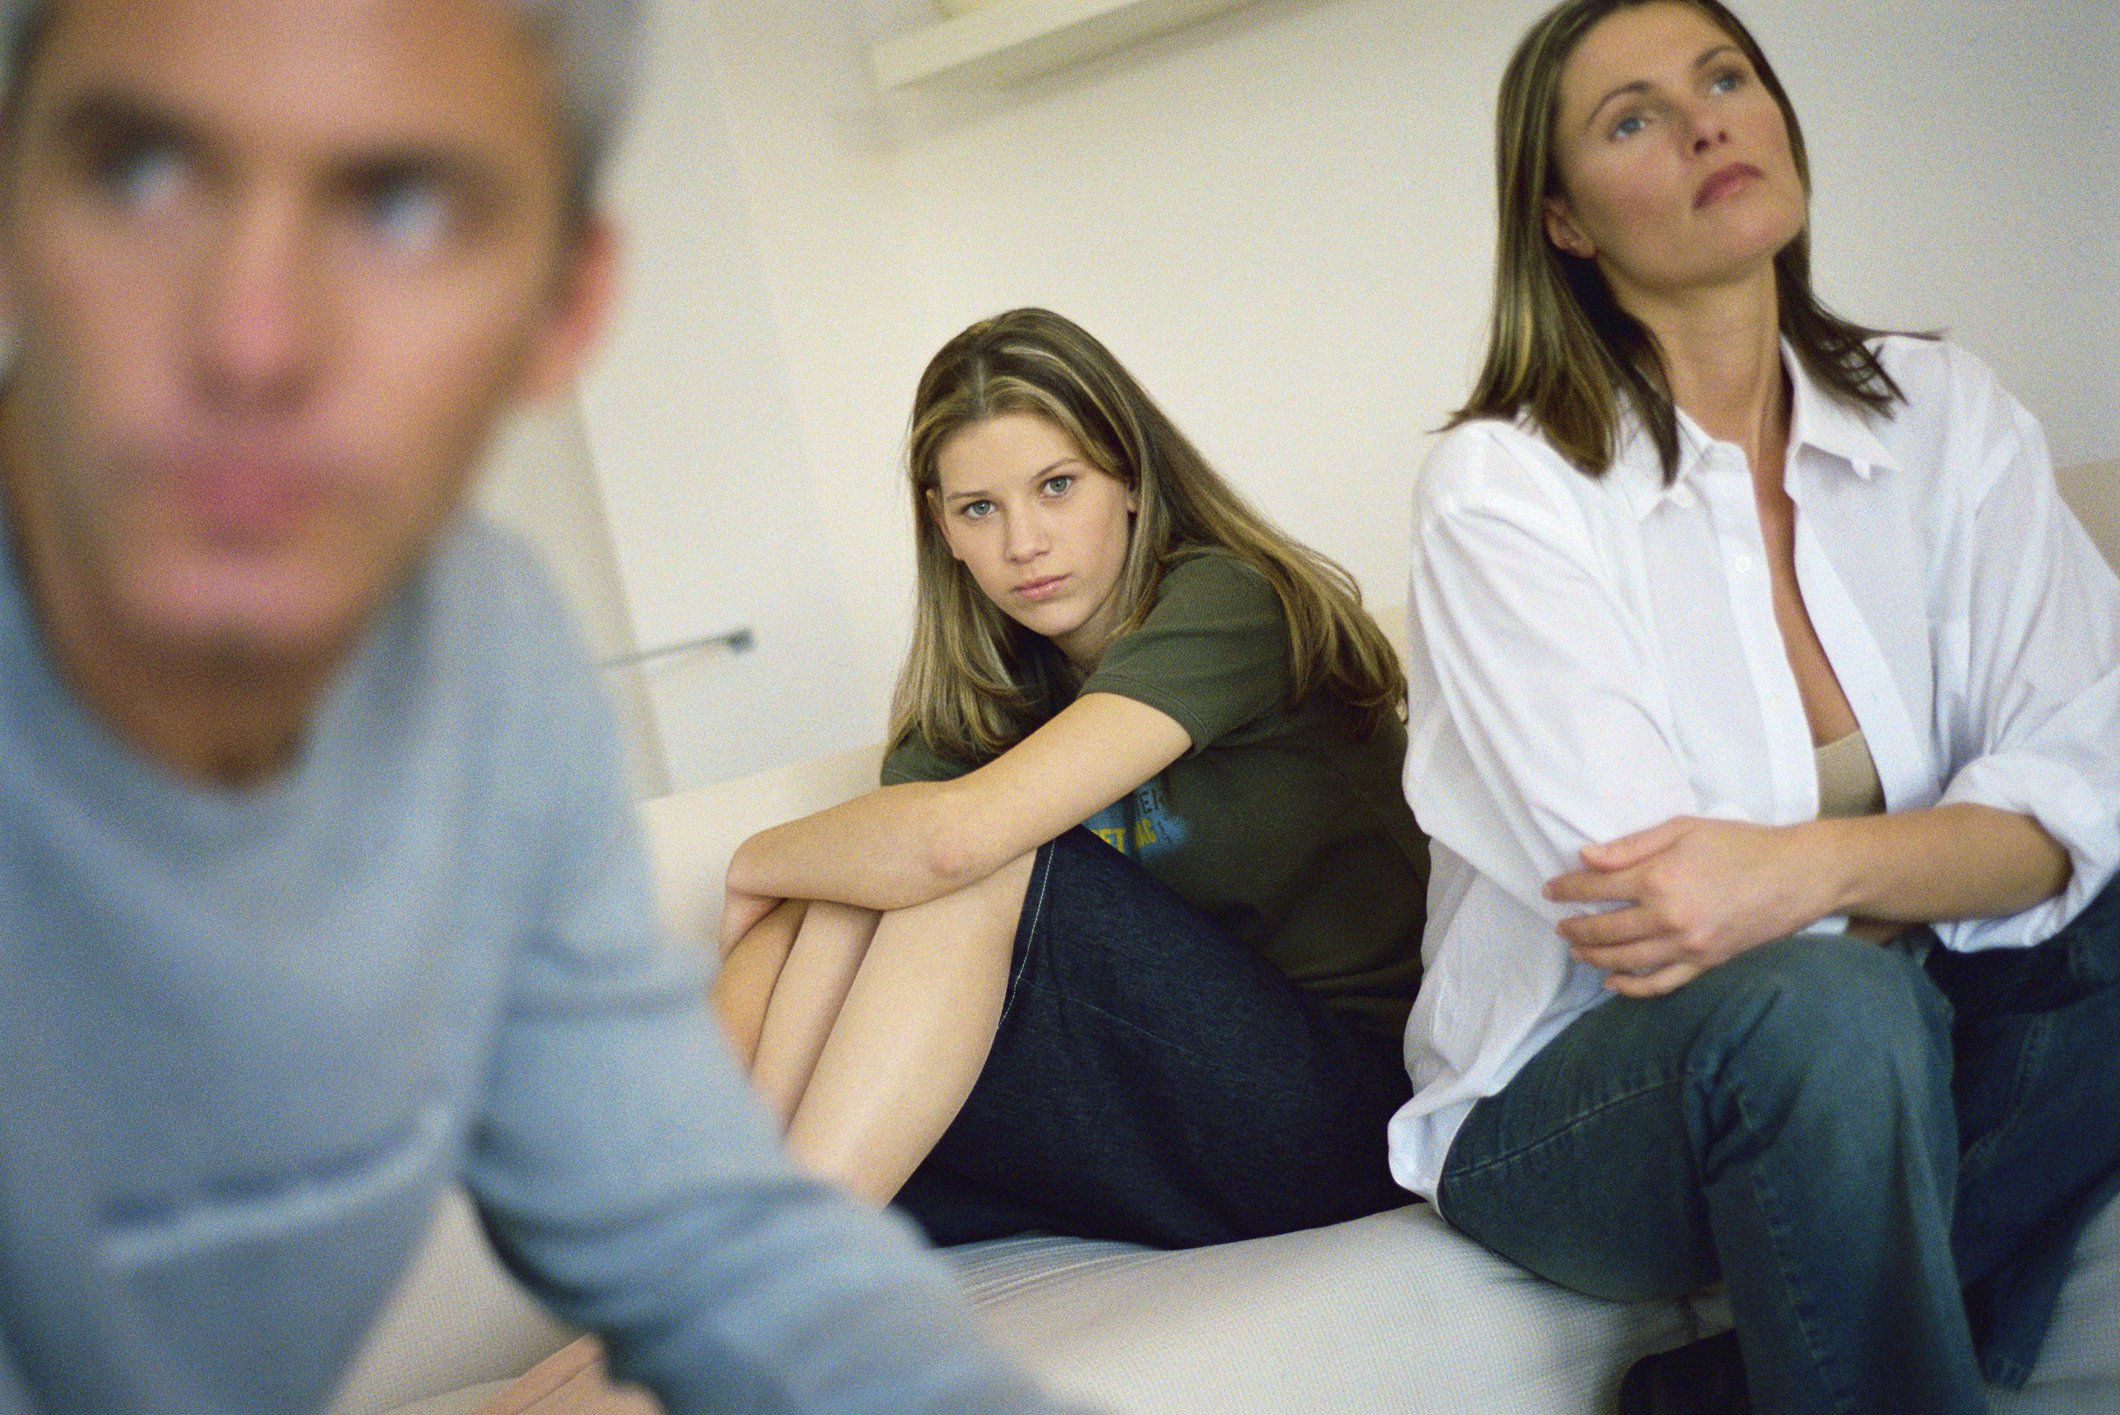 Teenage girl sitting on a bed hugging her knees as her parents sit nearby and look away | Photo: Getty Images